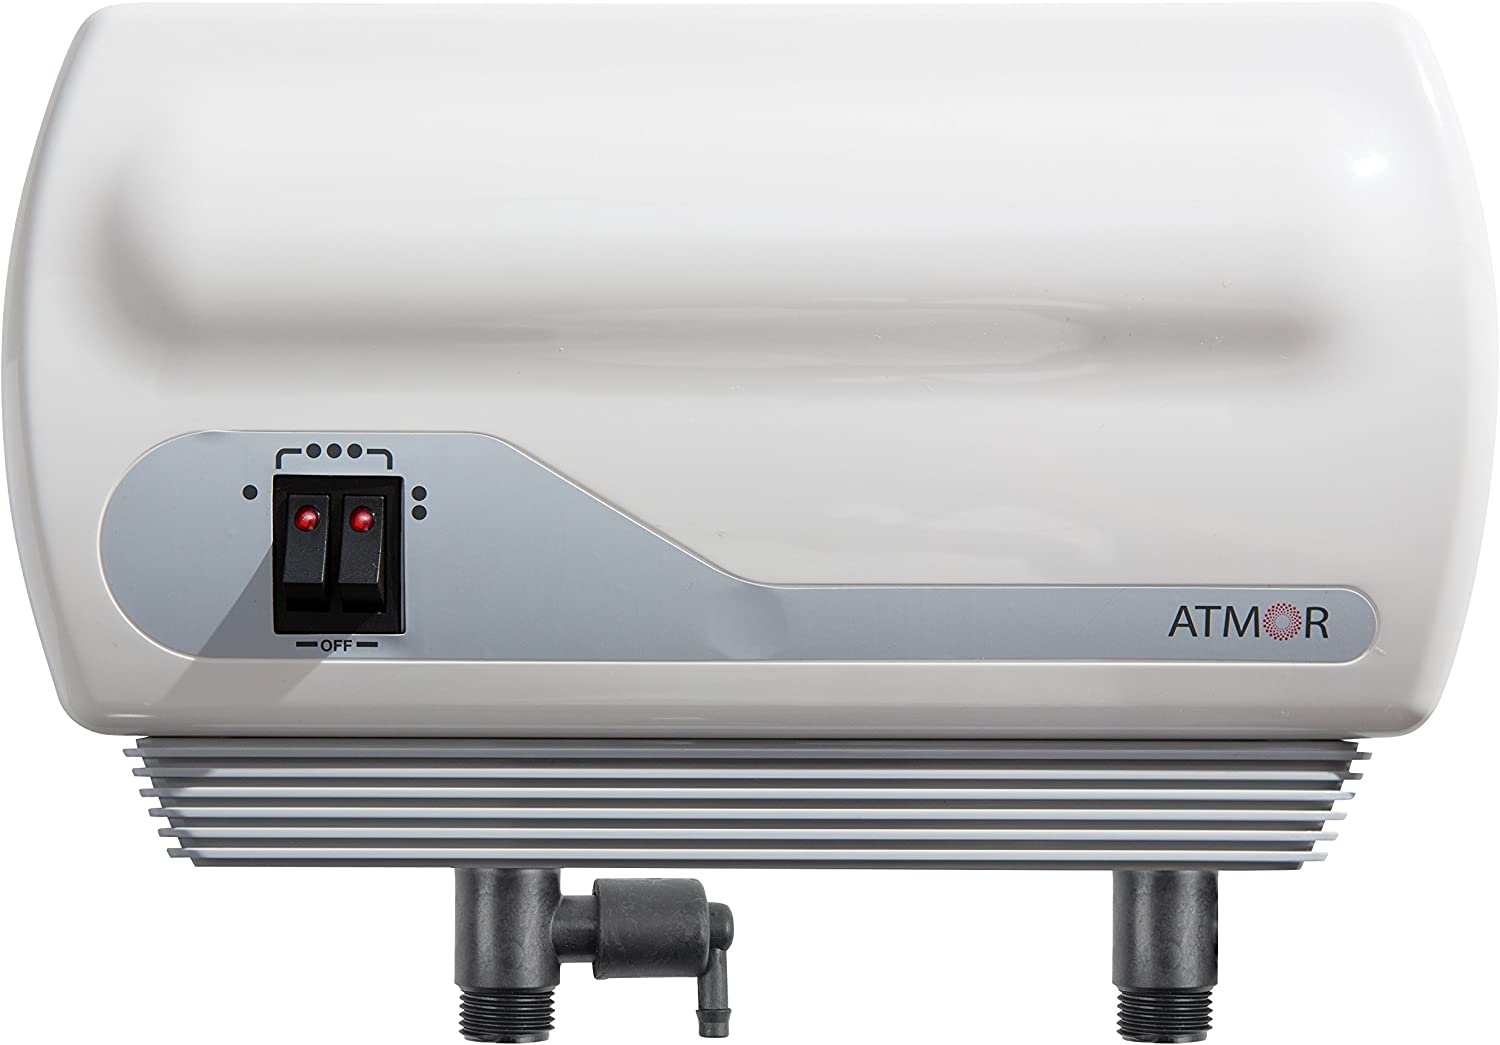 Atmor 13kw/240v, 2.25 GPM Tankless Water Heater Electric, Multiple Point-Of-Use Water Heater with Pressure Relief Device, AT-900-13